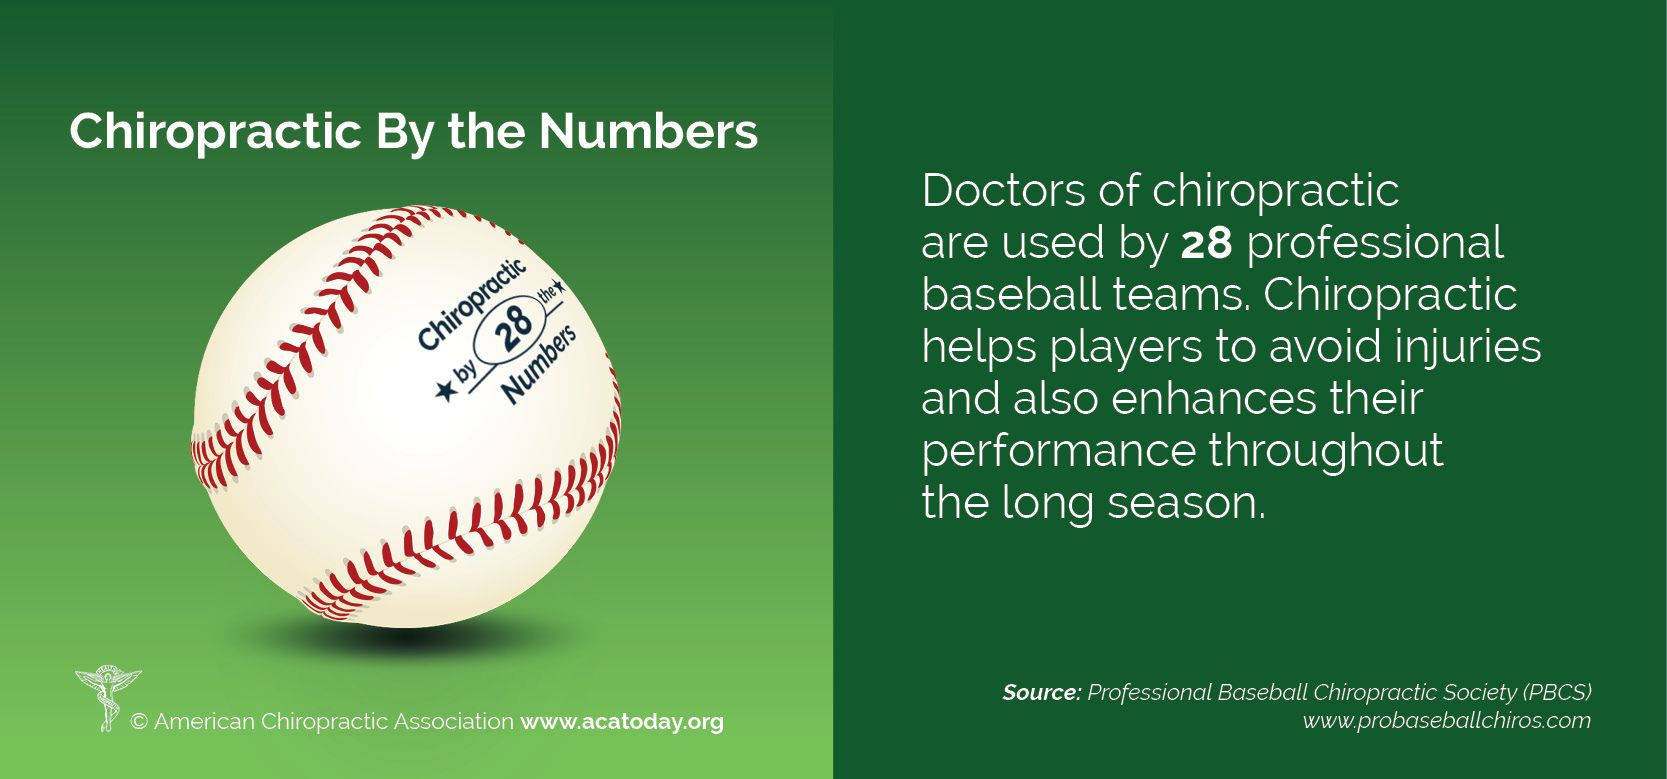 Chiropractic by the numbers Doctors of chiropractic are